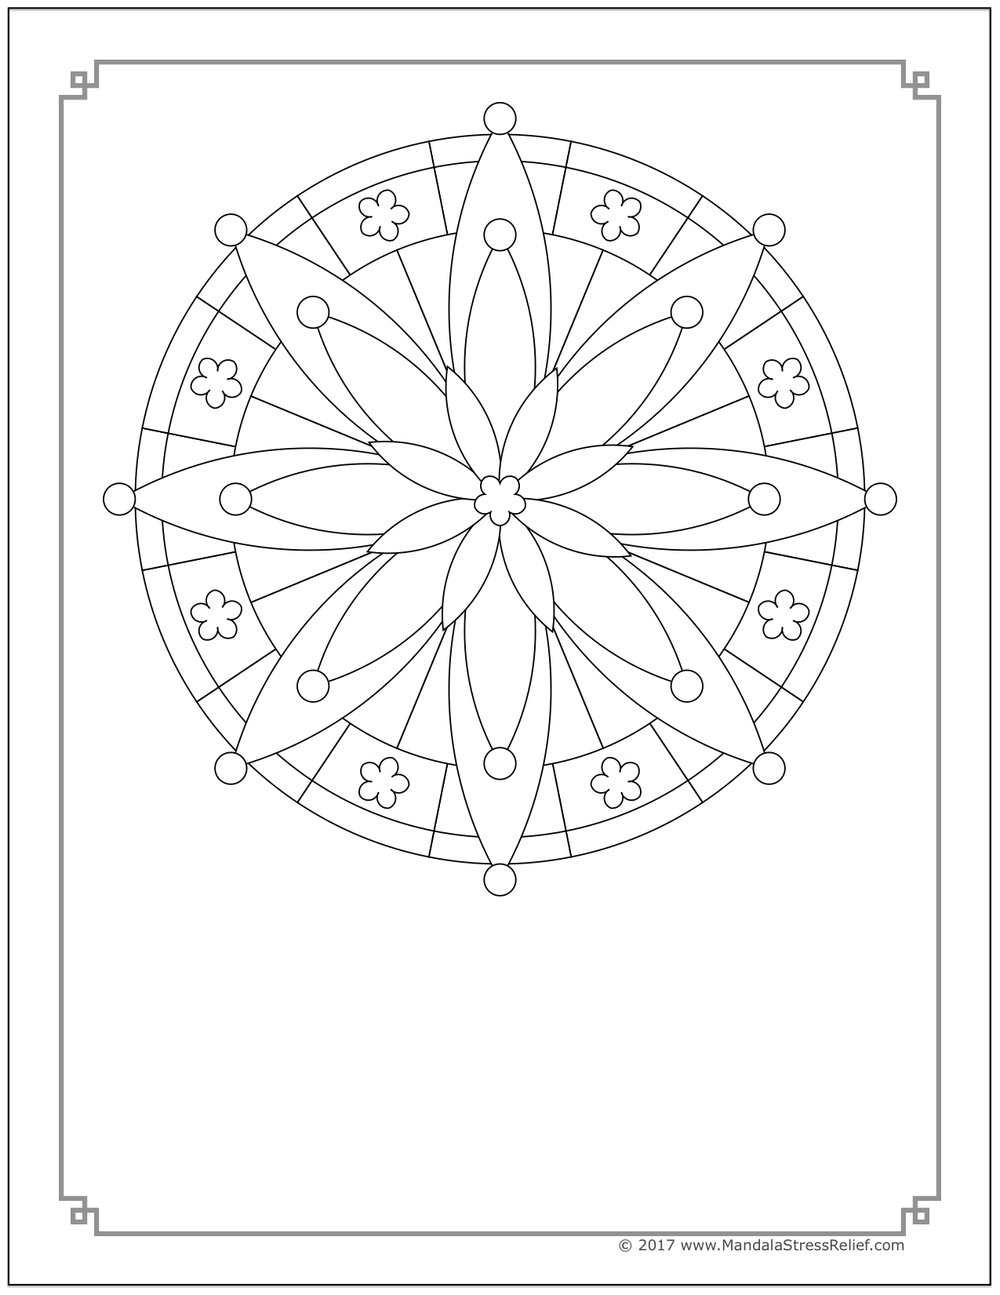 CREATE YOUR OWN MINI-POSTER:Download this page, colour in the mandala and add your own favourite quote at the bottom.